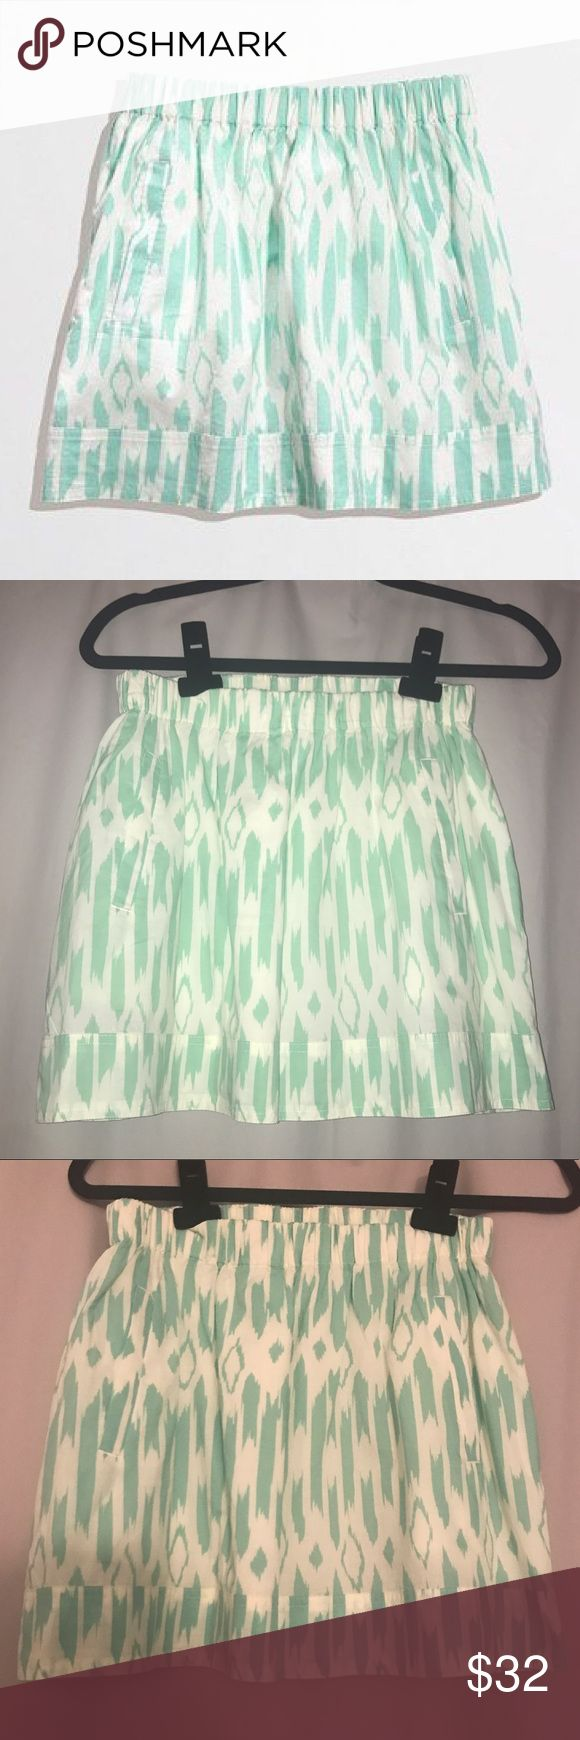 NWT J Crew Aztec Print Skirt with pockets! Brand new, never worn J Crew skirt with turquoise, mint aztec print with pockets! J. Crew Skirts